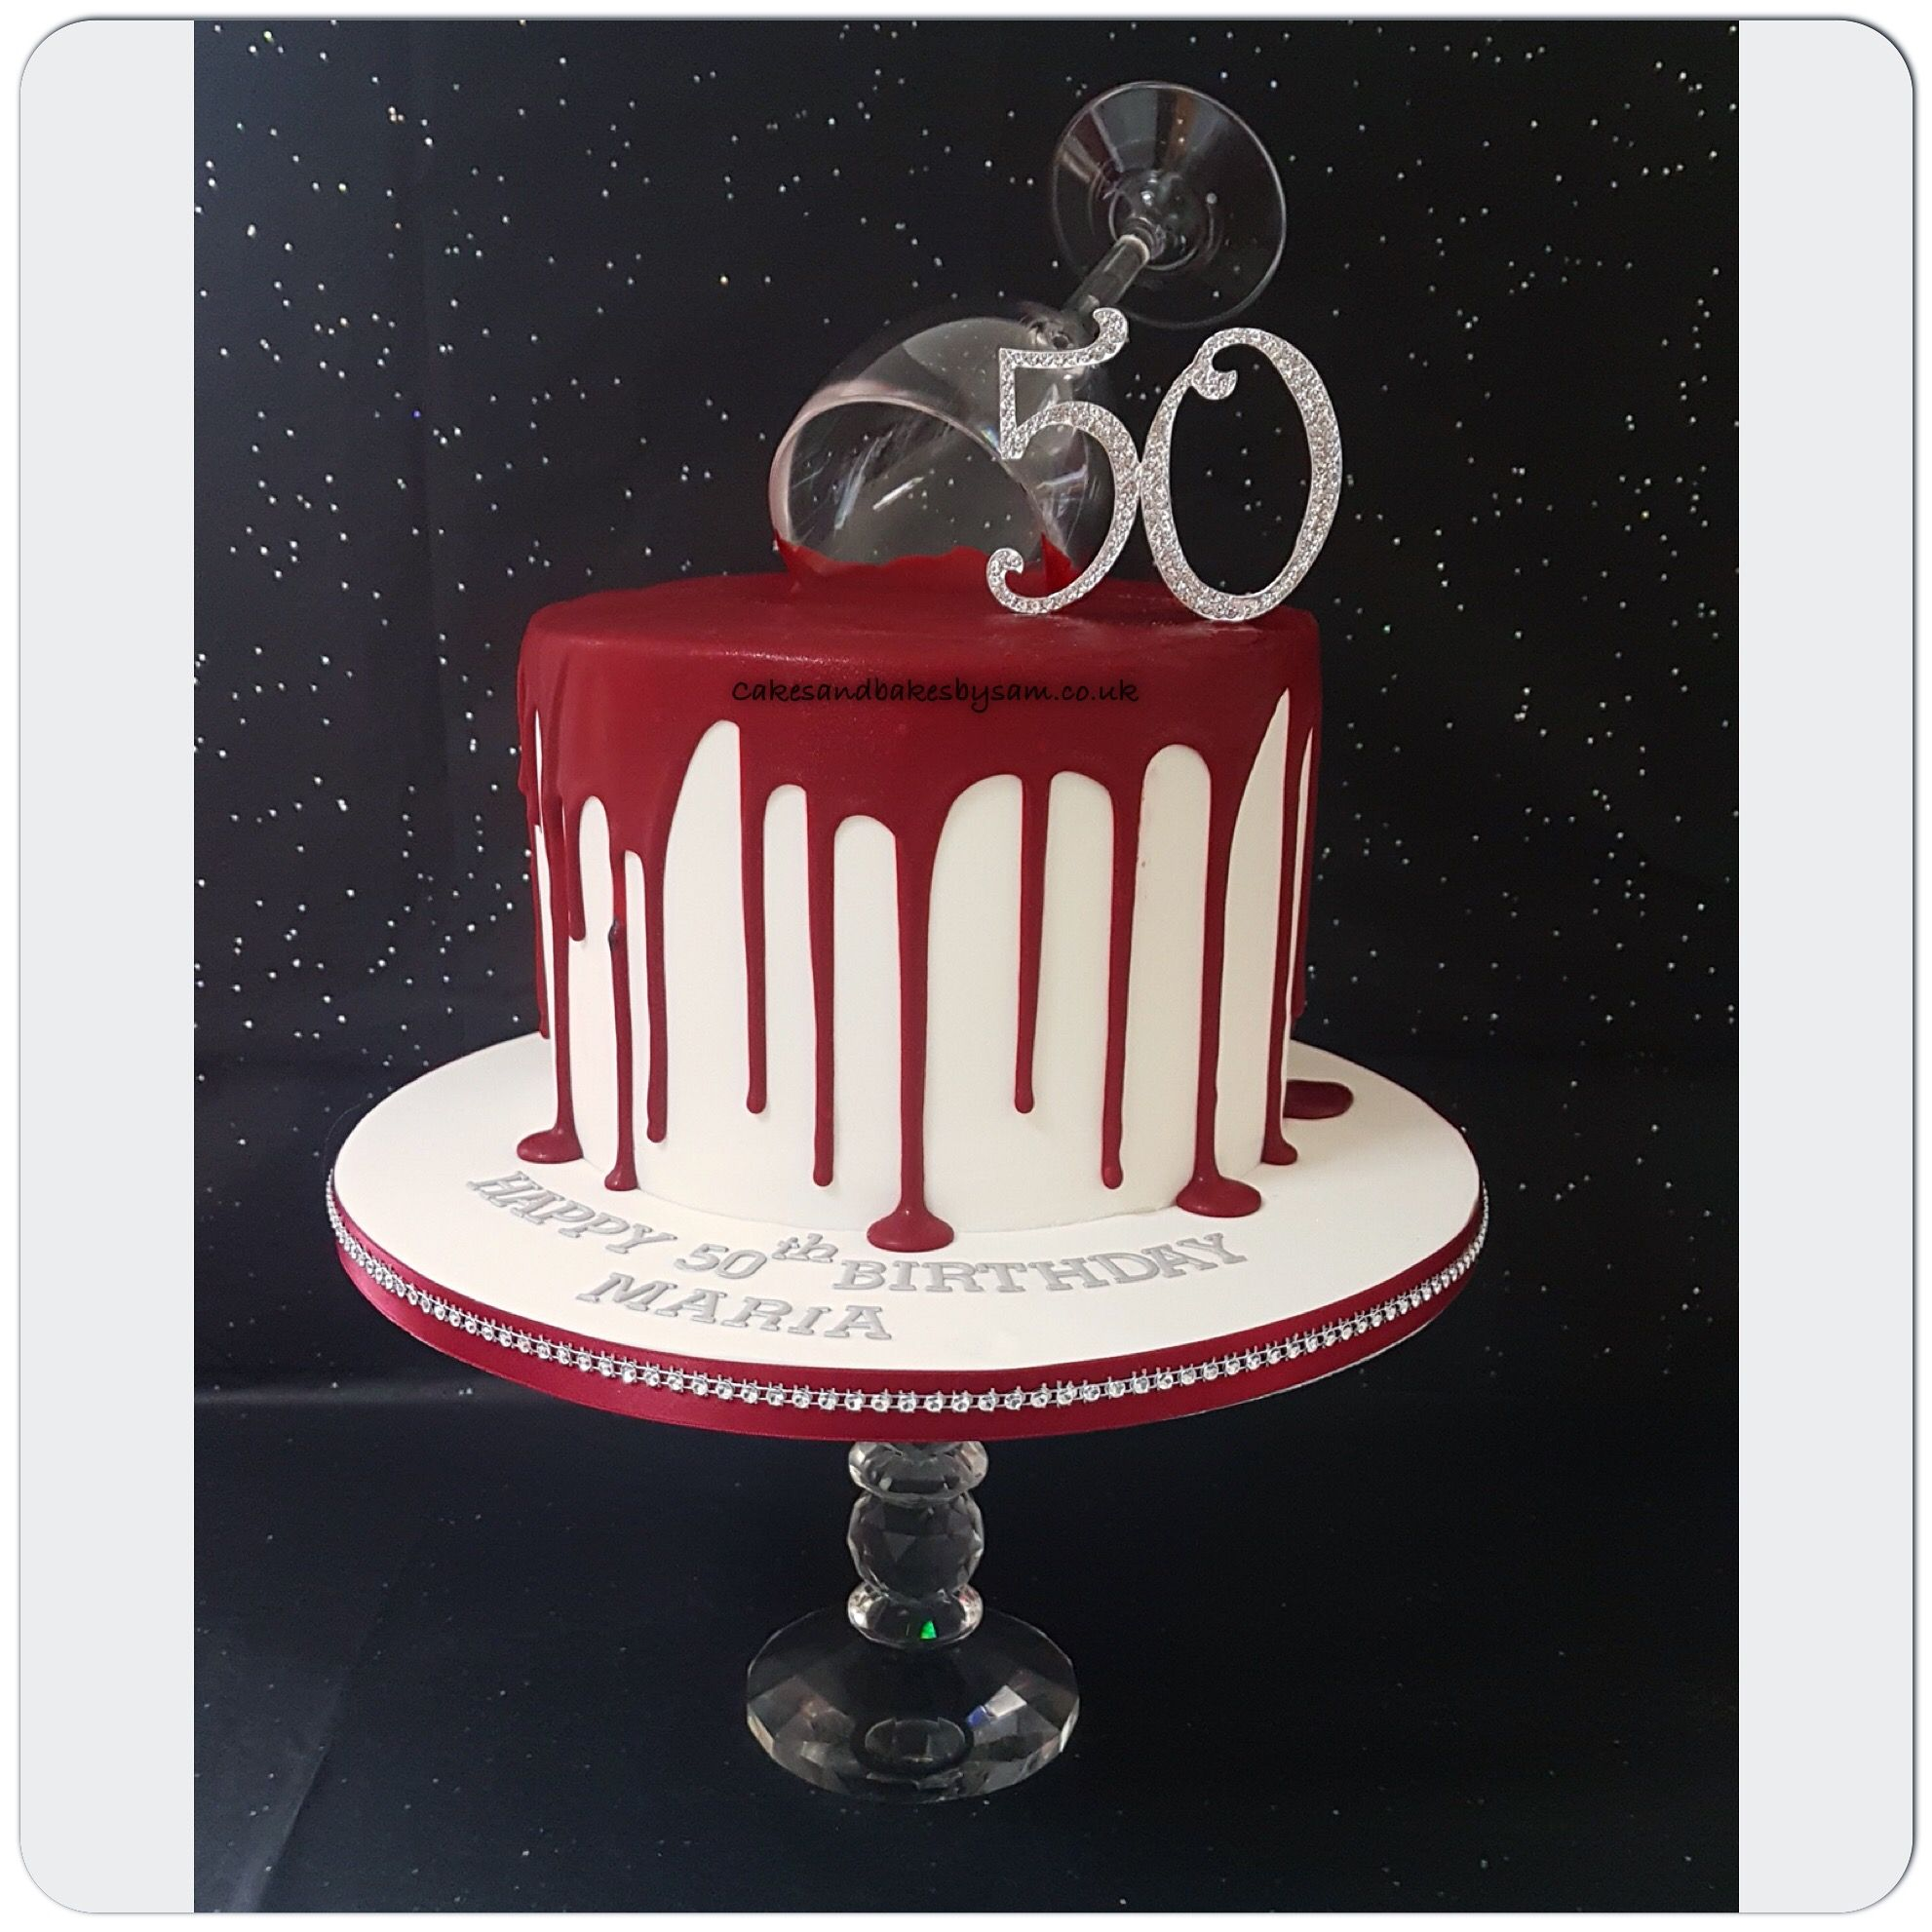 red wine cake design Pin on Cakes and Bakes by Sam